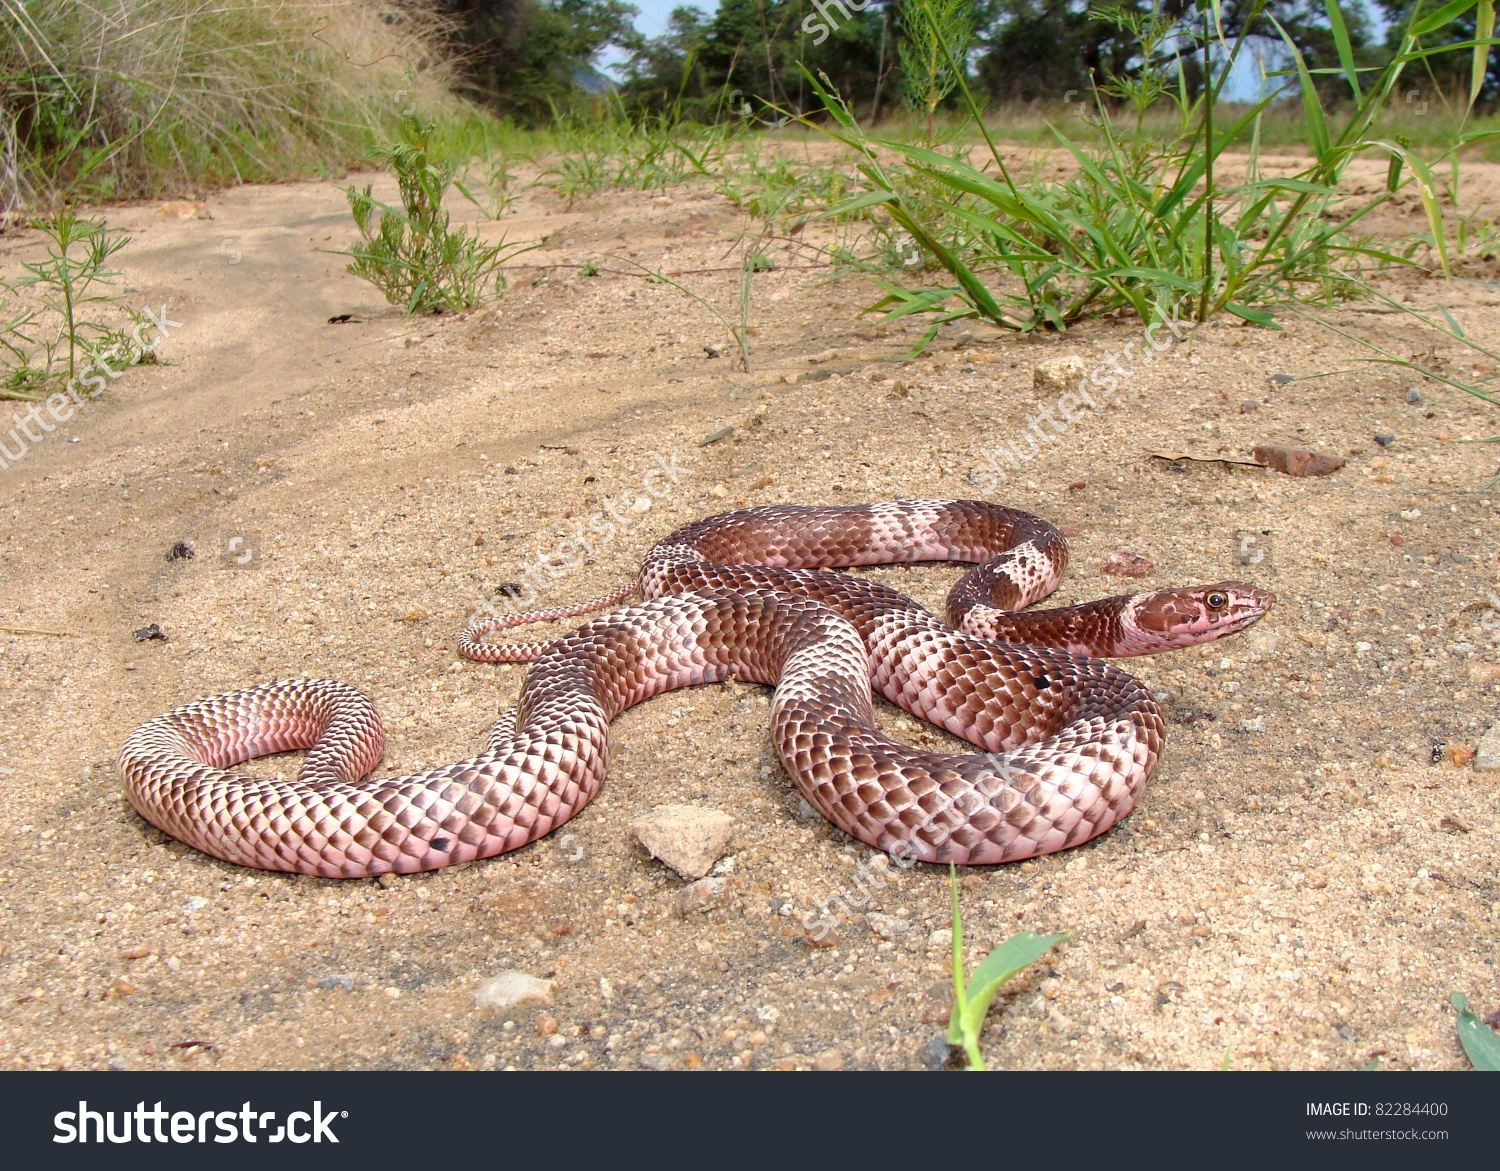 Western Coachwhip Snake Stock Photo 82284400 : Shutterstock.